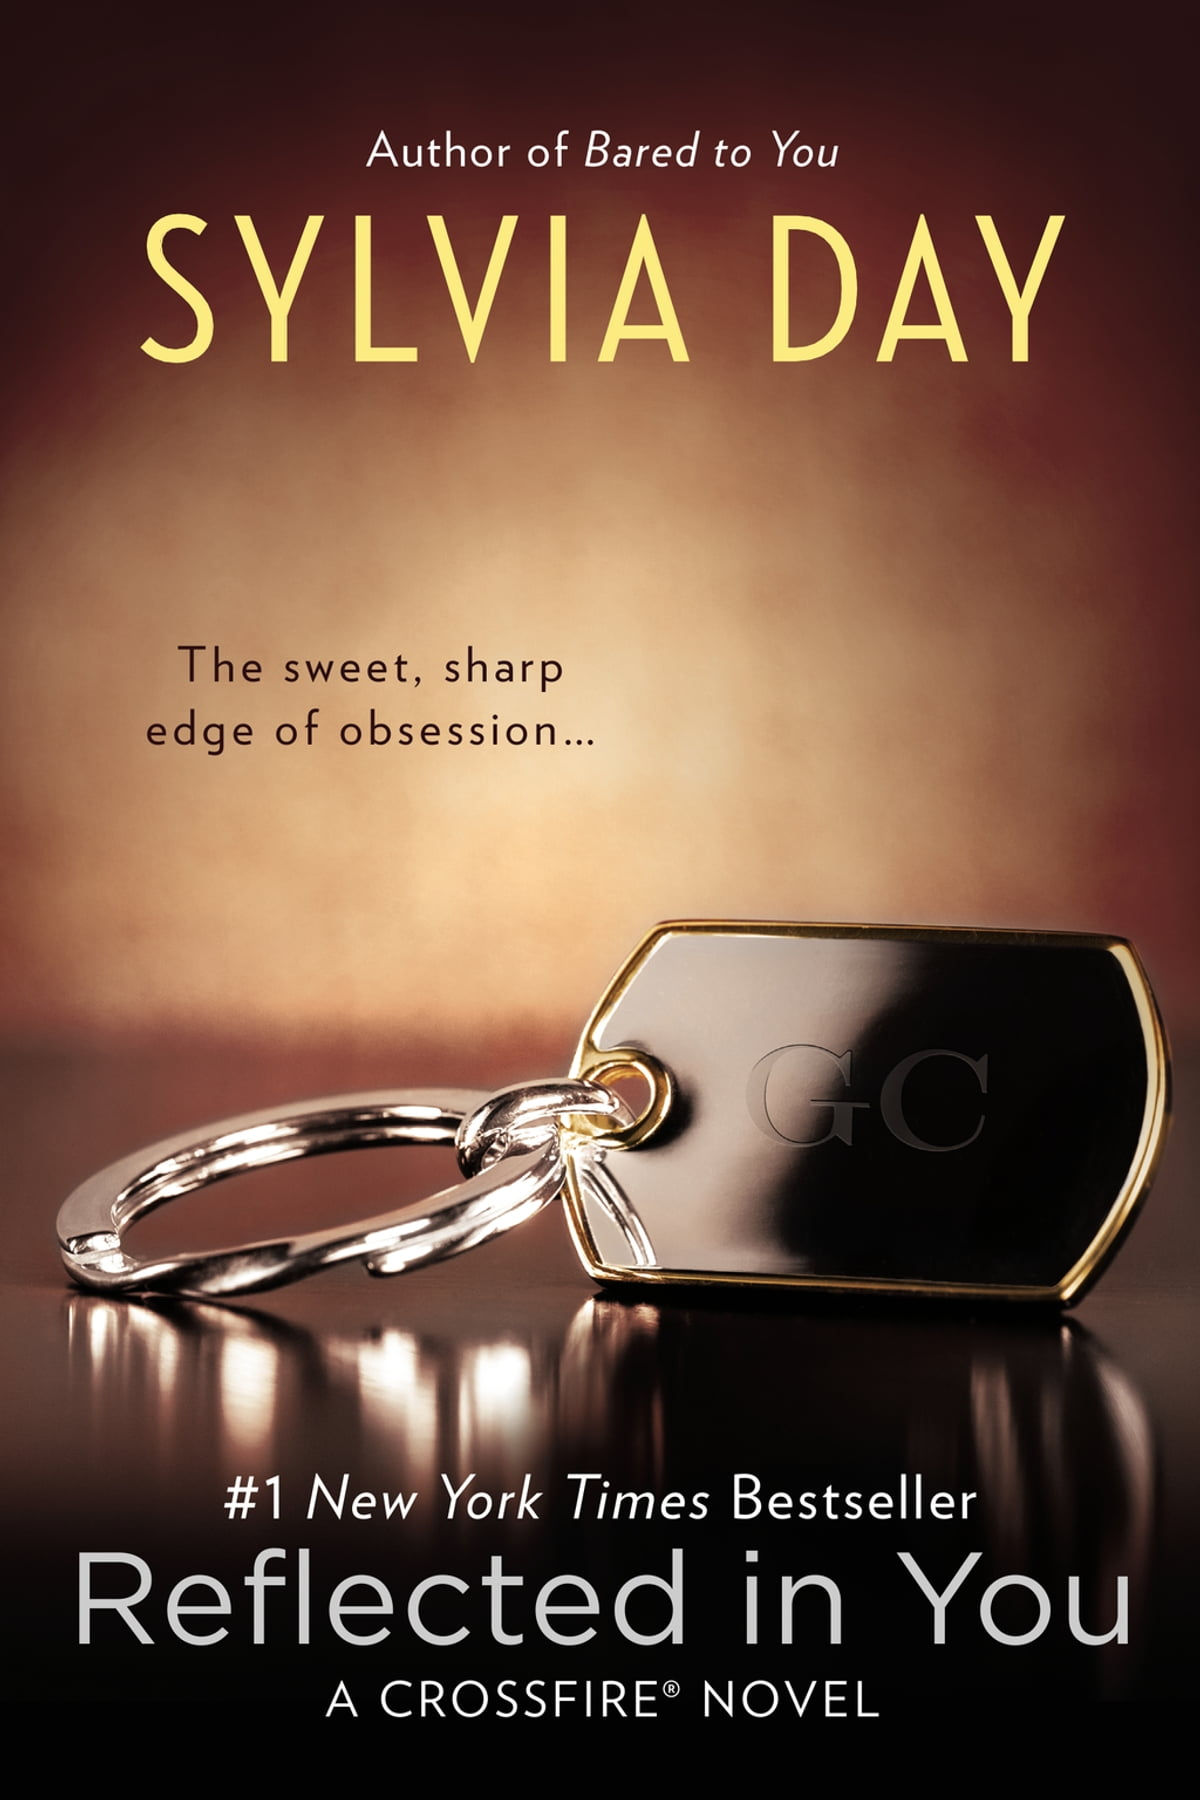 Free ask epub day it download sylvia for